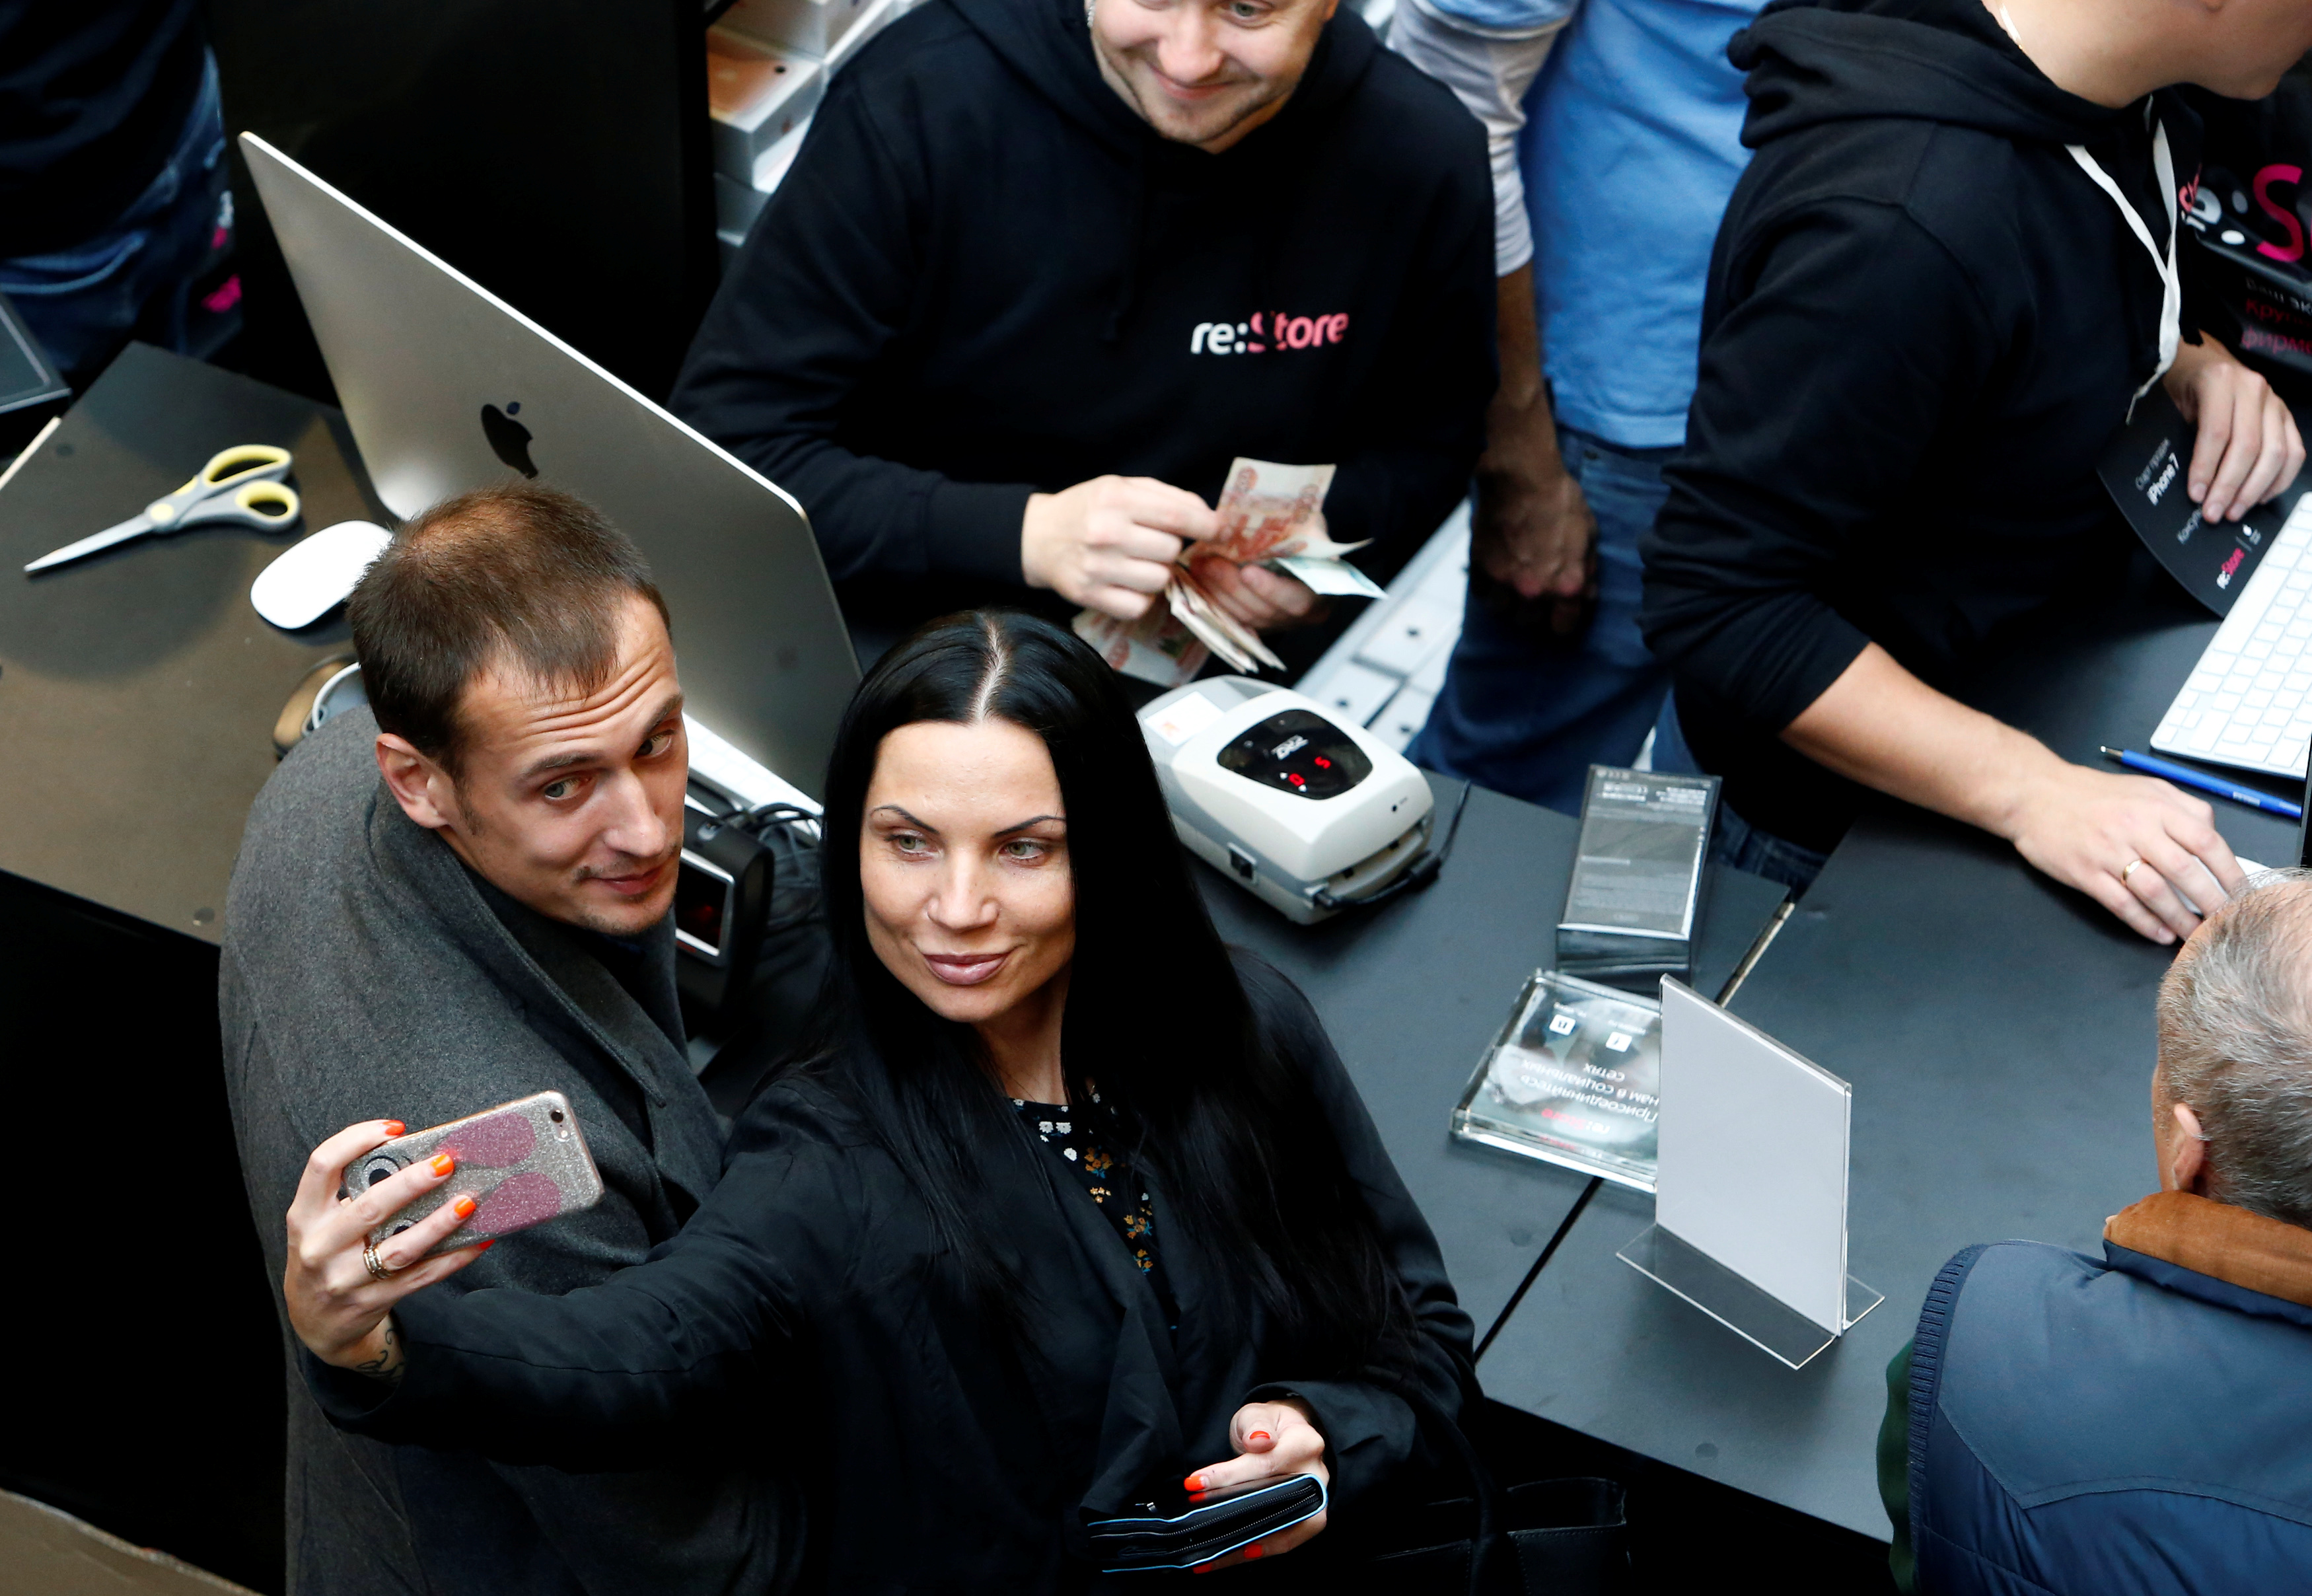 Customers gather at a store selling Apple products during launch of new iPhone 7 sales in Moscow